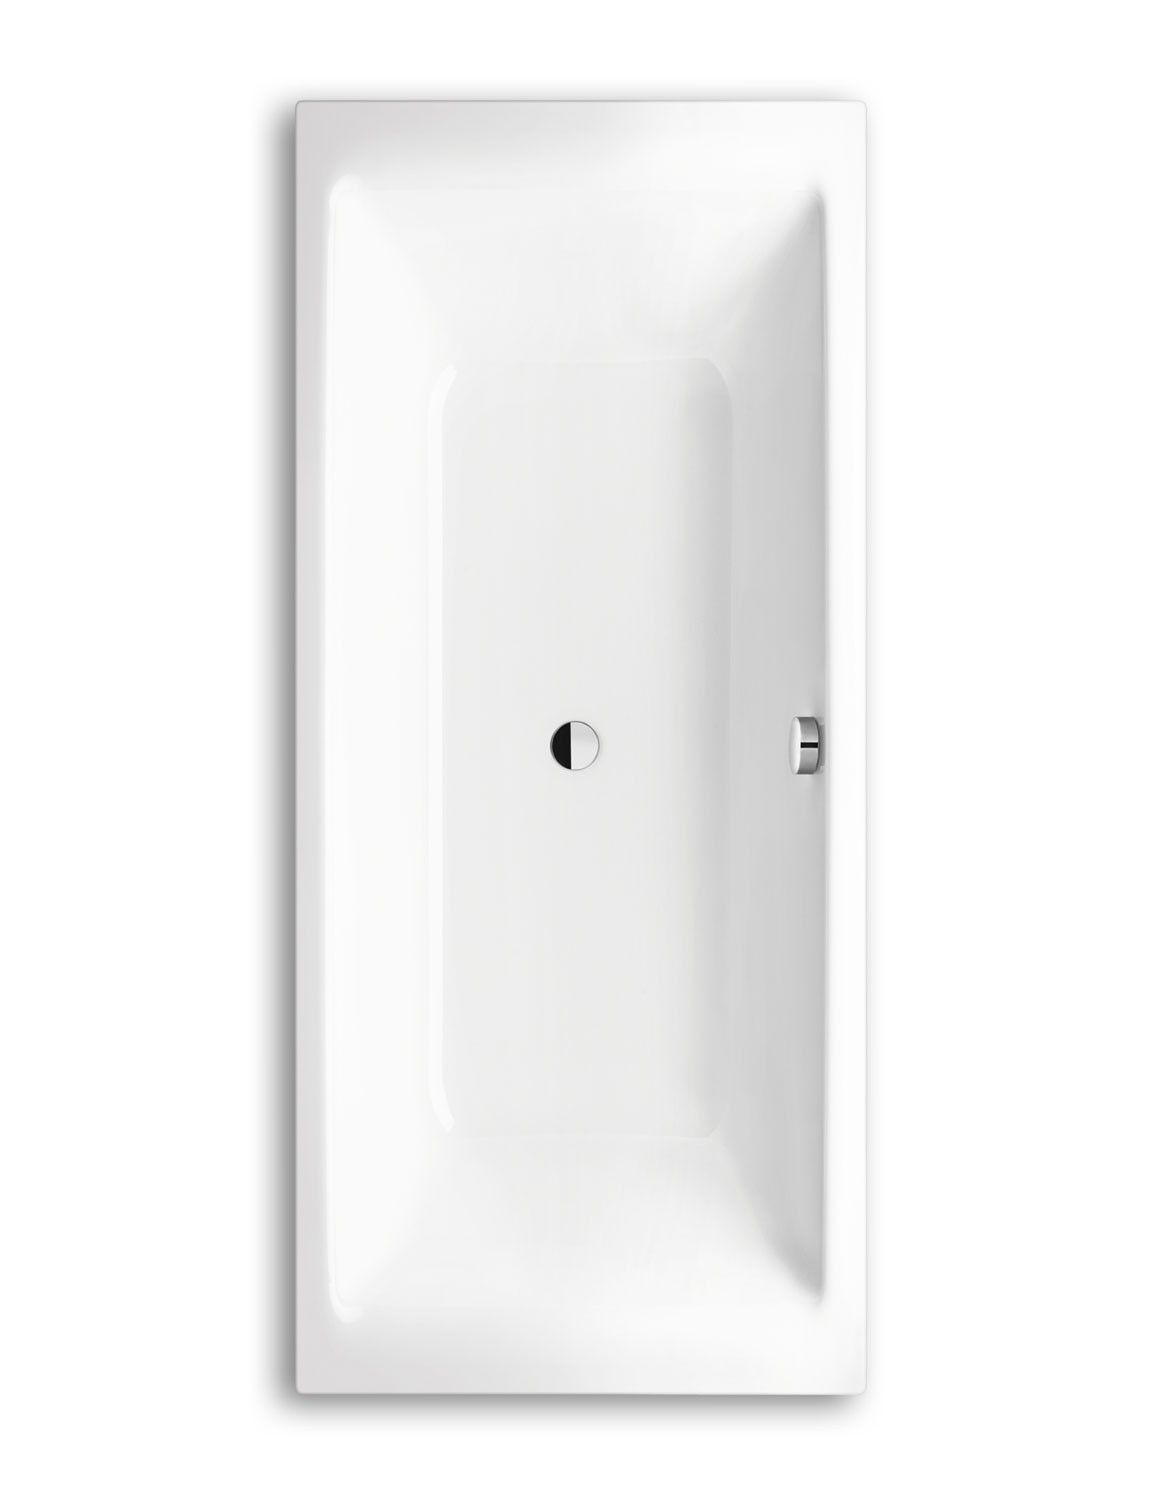 Kaldewei Conoduo This Is The Tub We Both Like Kaldewei 751 1p Cayono Drop In Steel